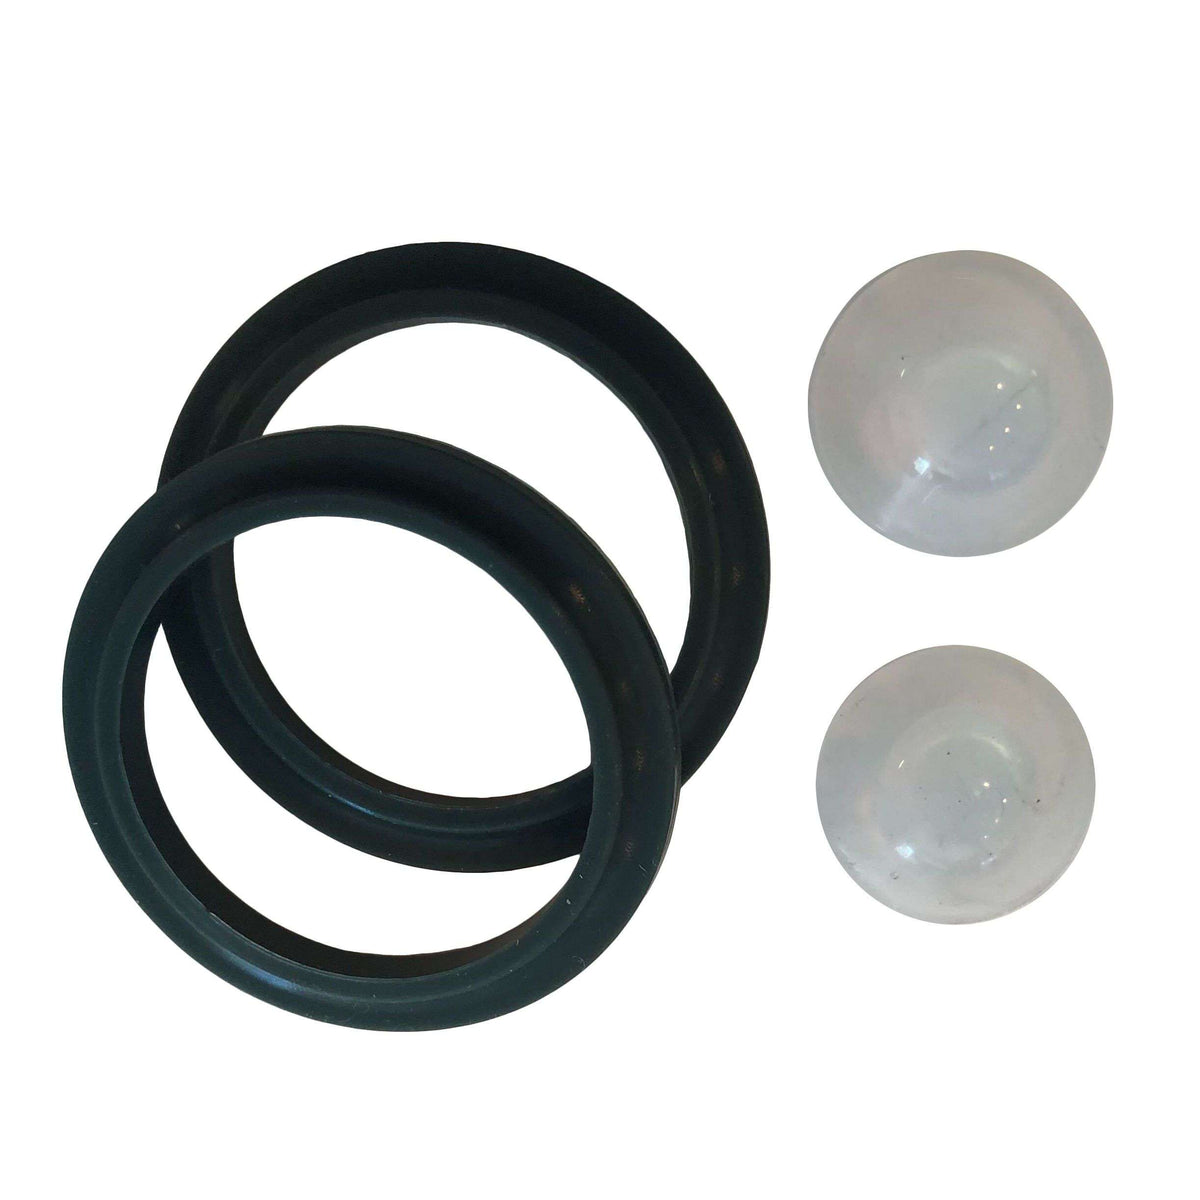 Replacement Flip N Sip Lid Gaskets & Stoppers